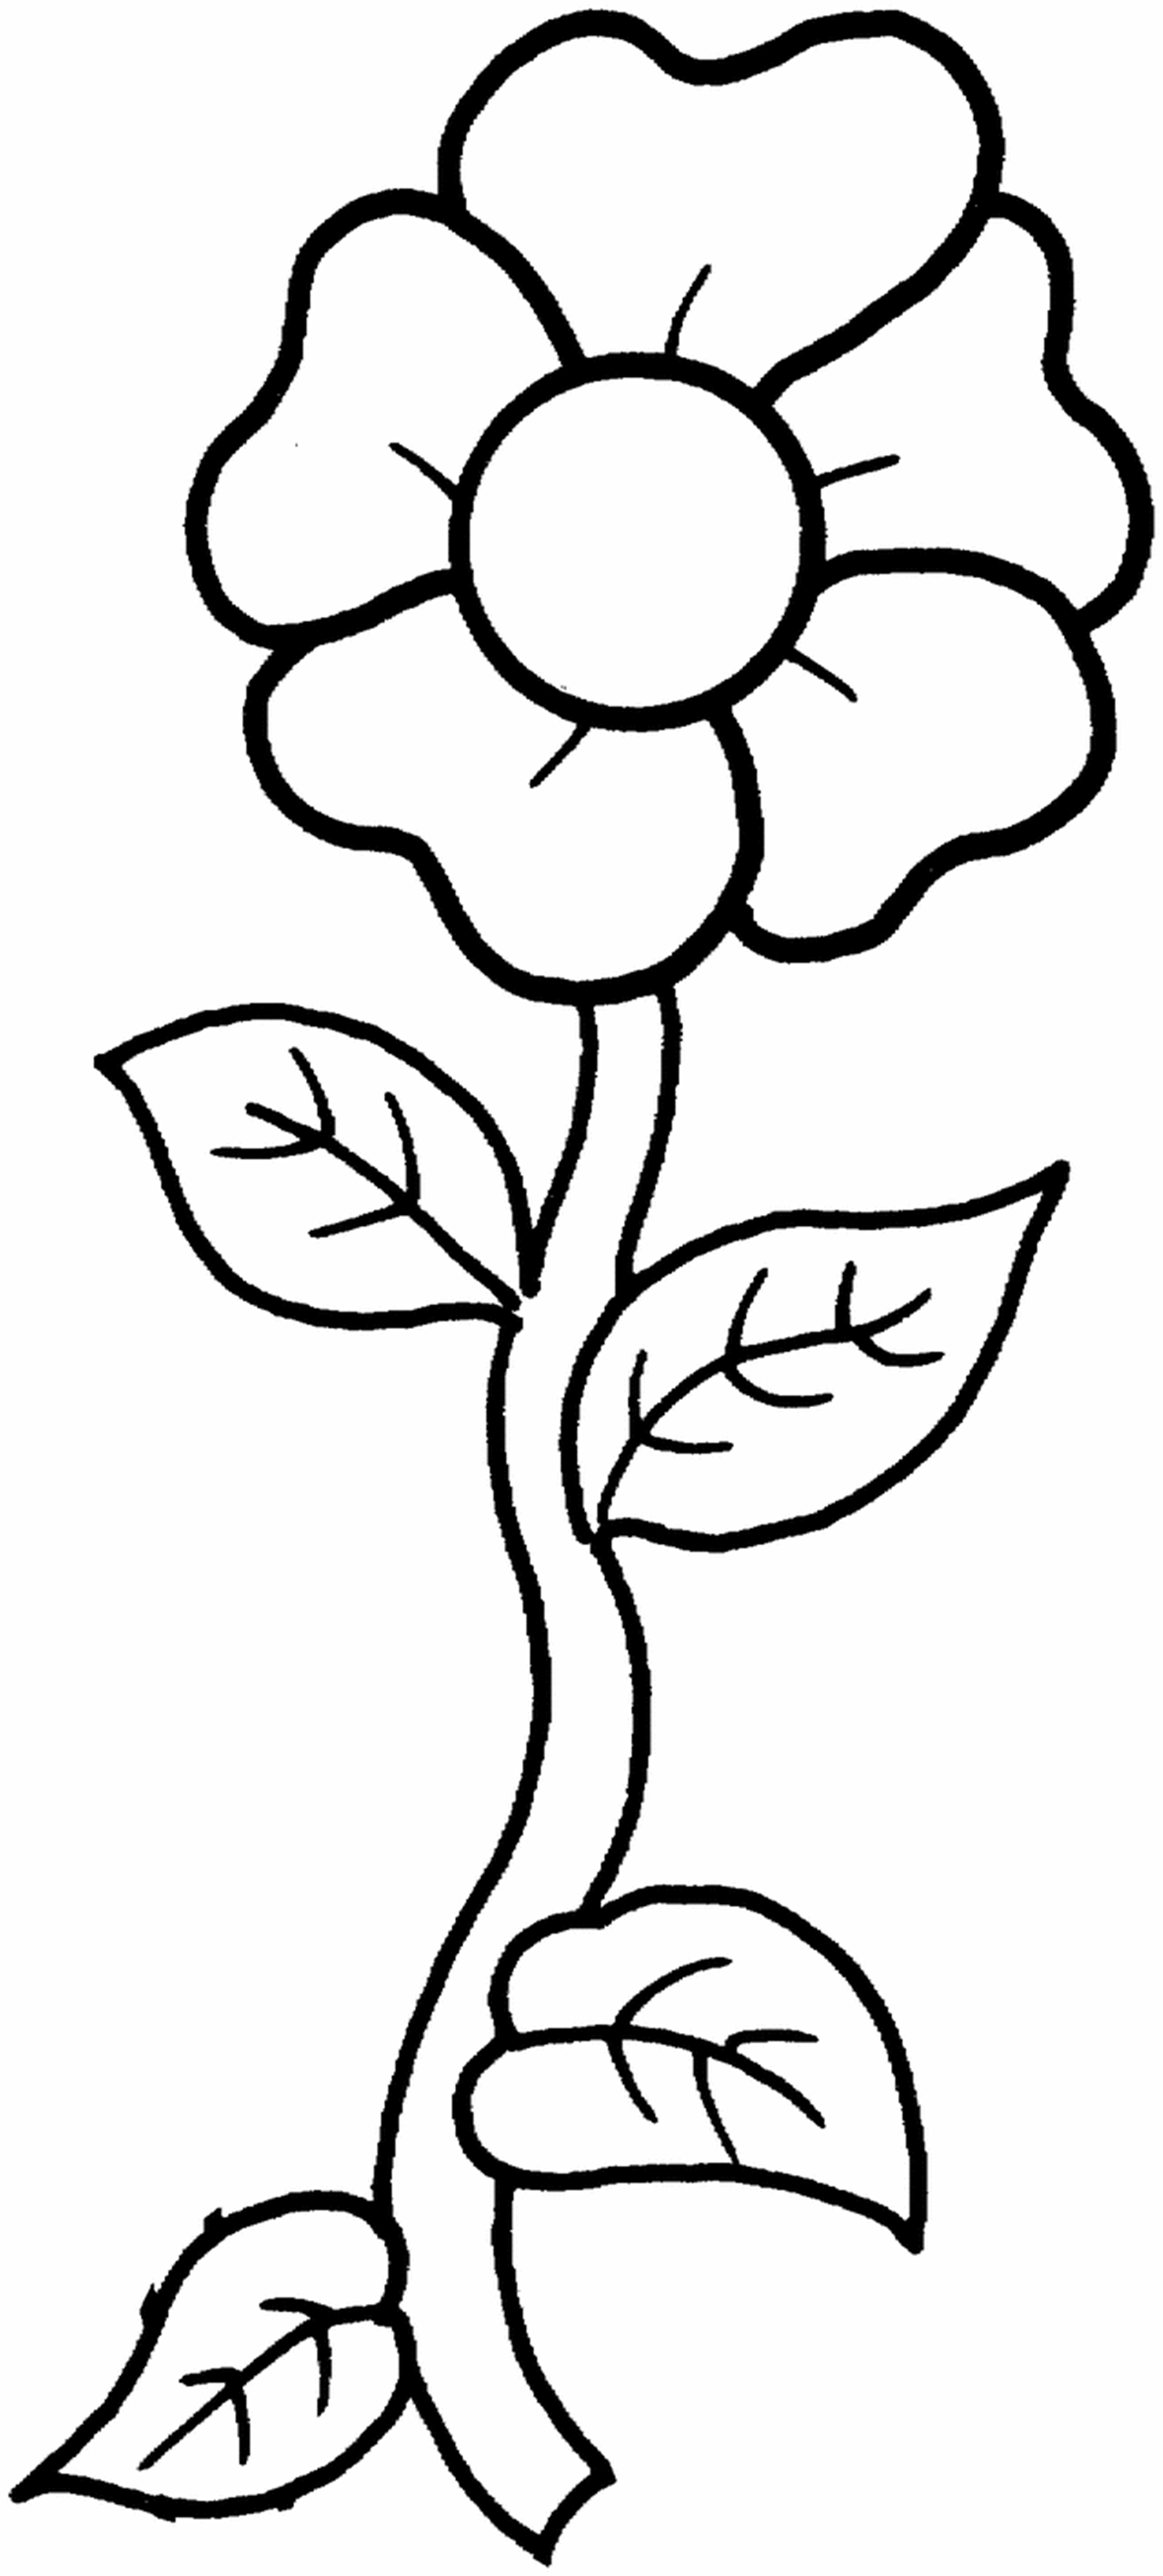 printable flowers to color free printable flower coloring pages for kids cool2bkids color printable to flowers